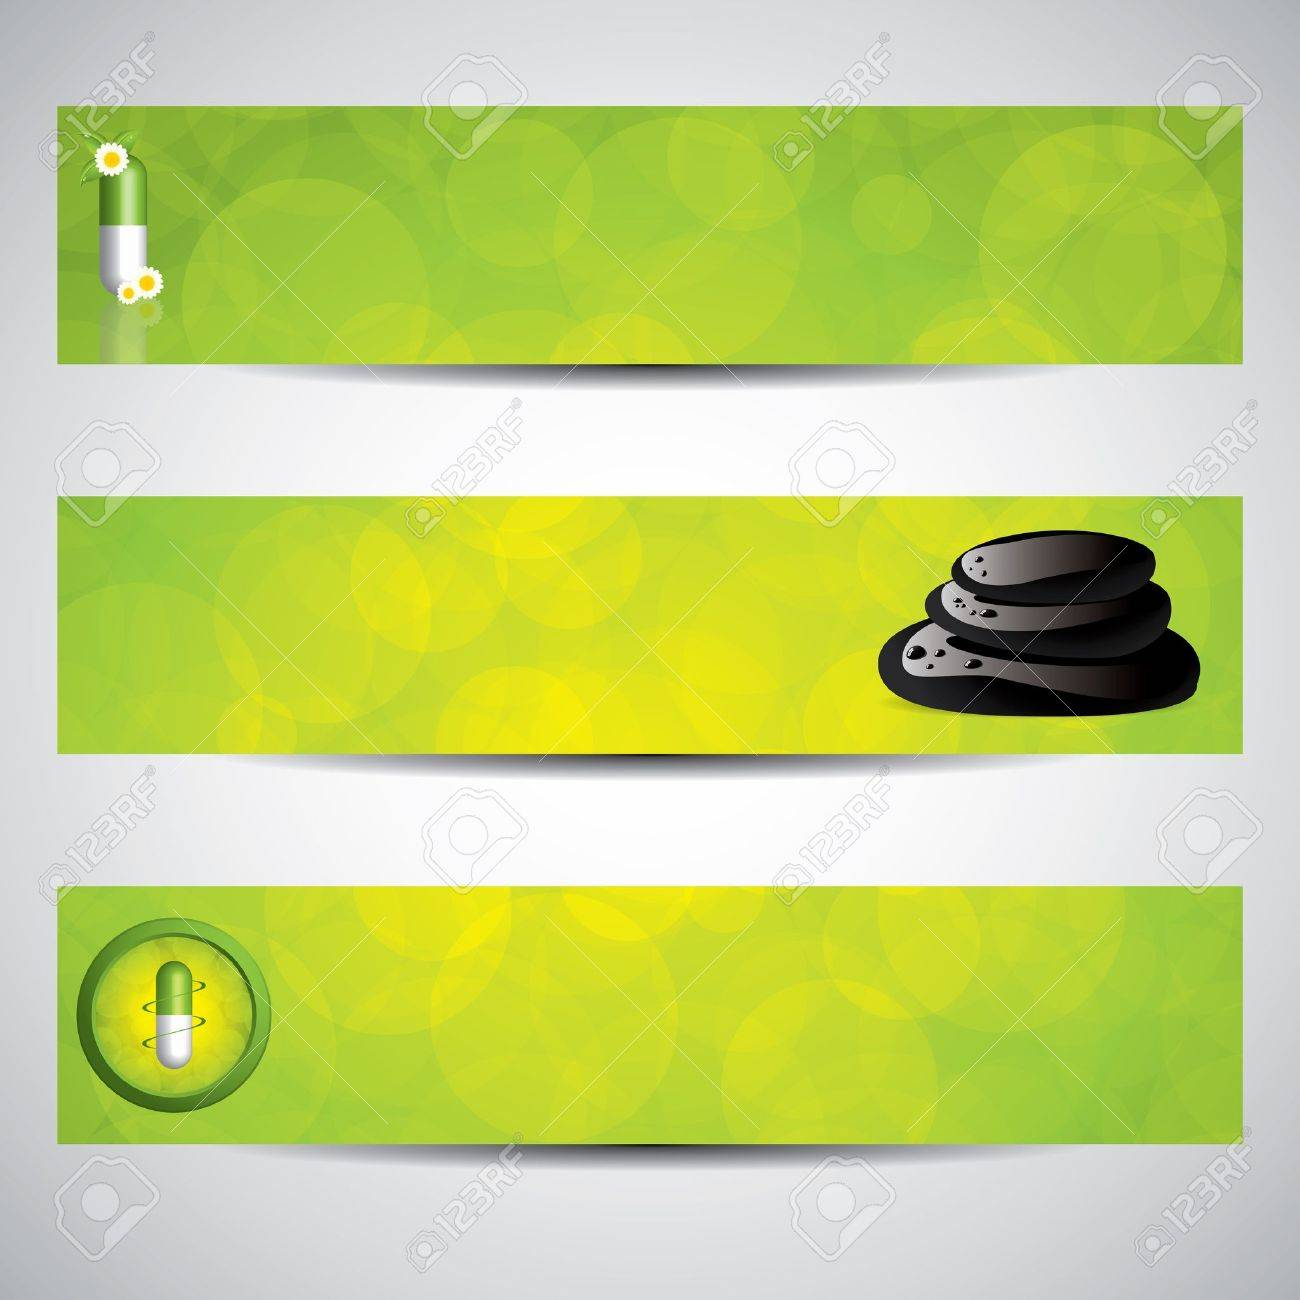 Herbal Pill And Spa Banners Environment Elements Royalty Free Cliparts Vectors And Stock Illustration Image 11974103